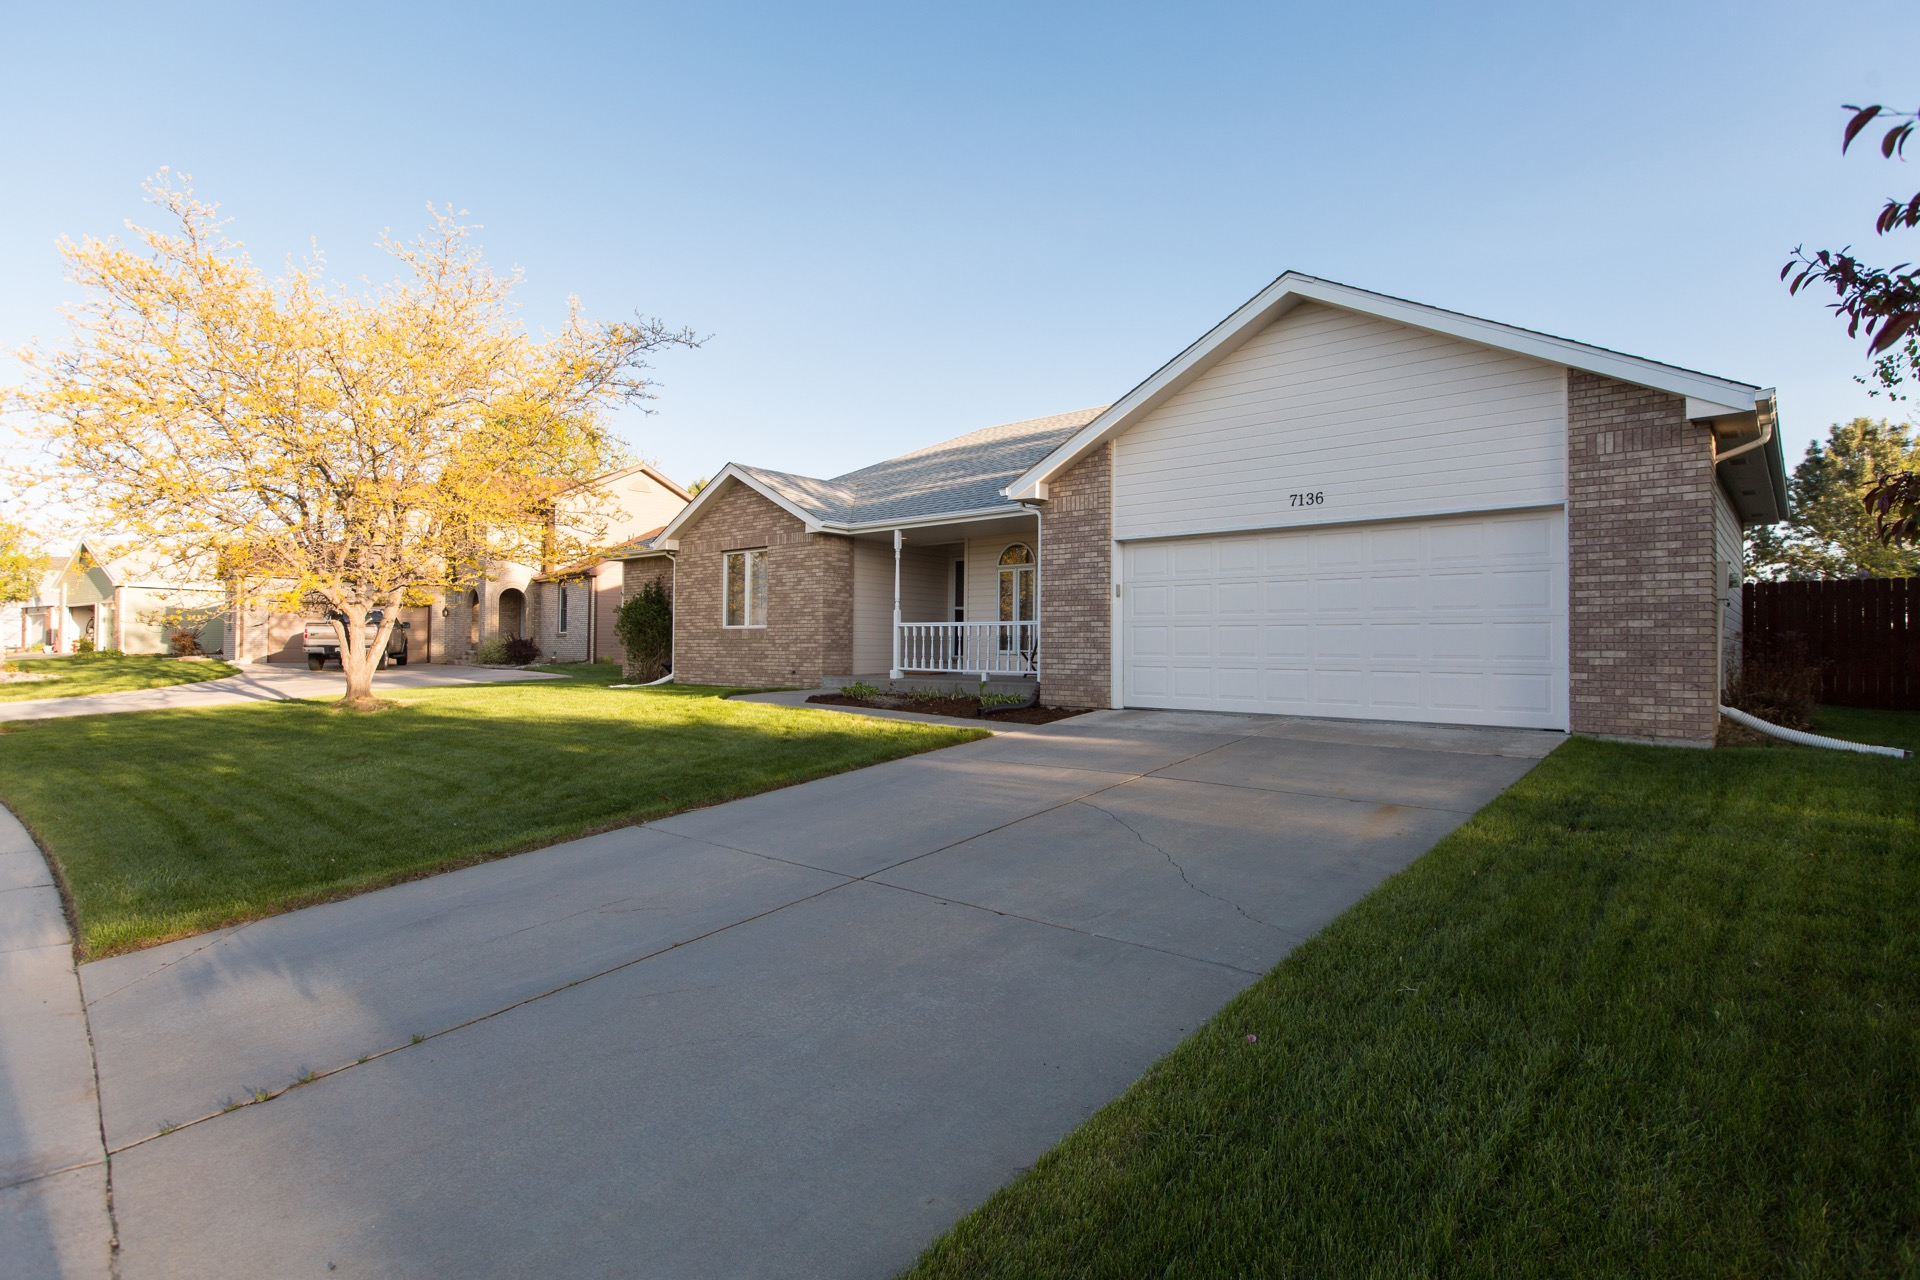 7136 Canberra St Greeley, CO-3.jpg